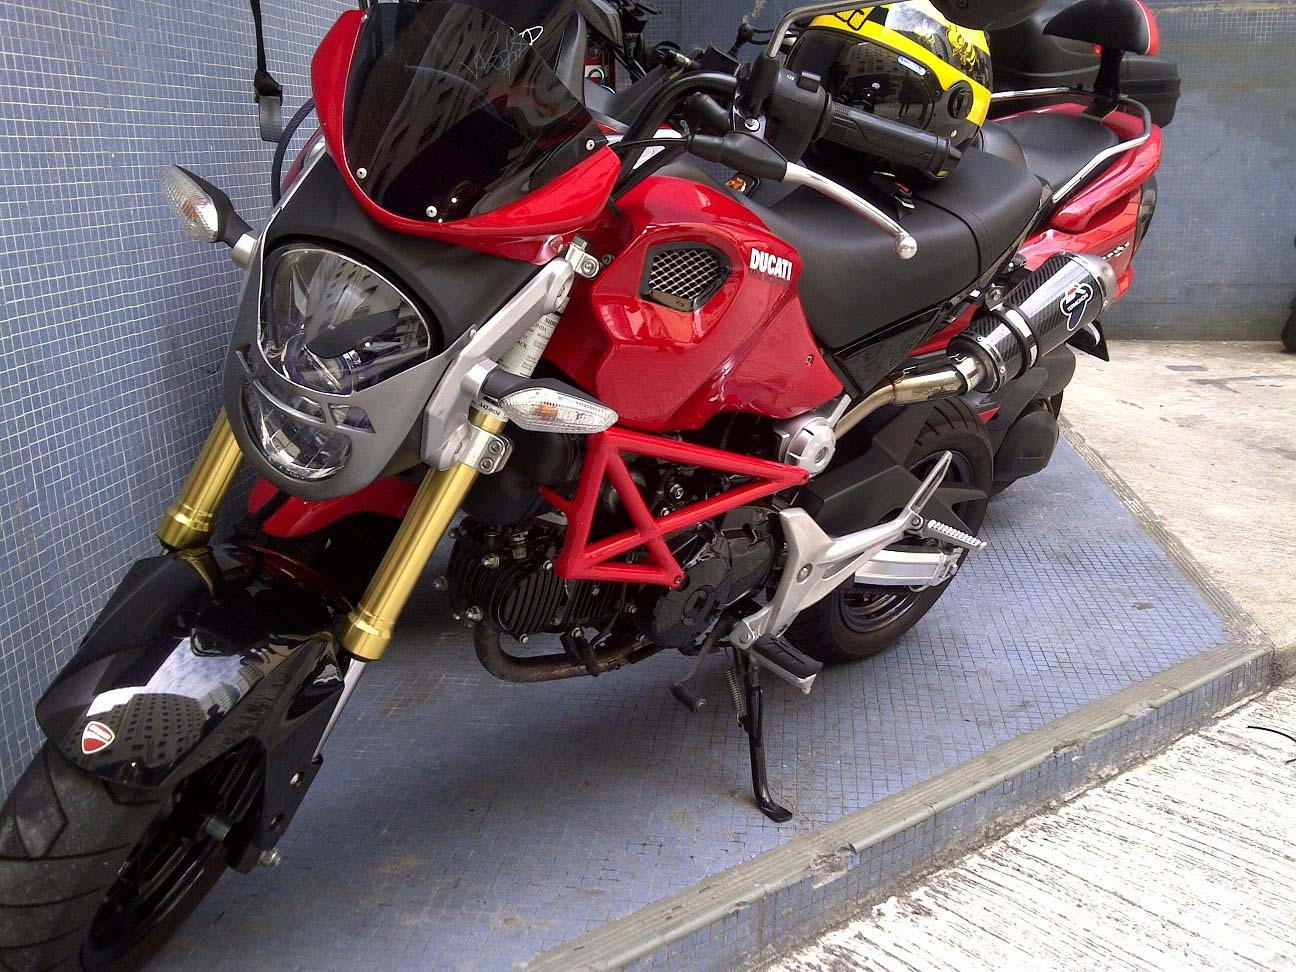 honda grom becomes ducati monster - autoevolution